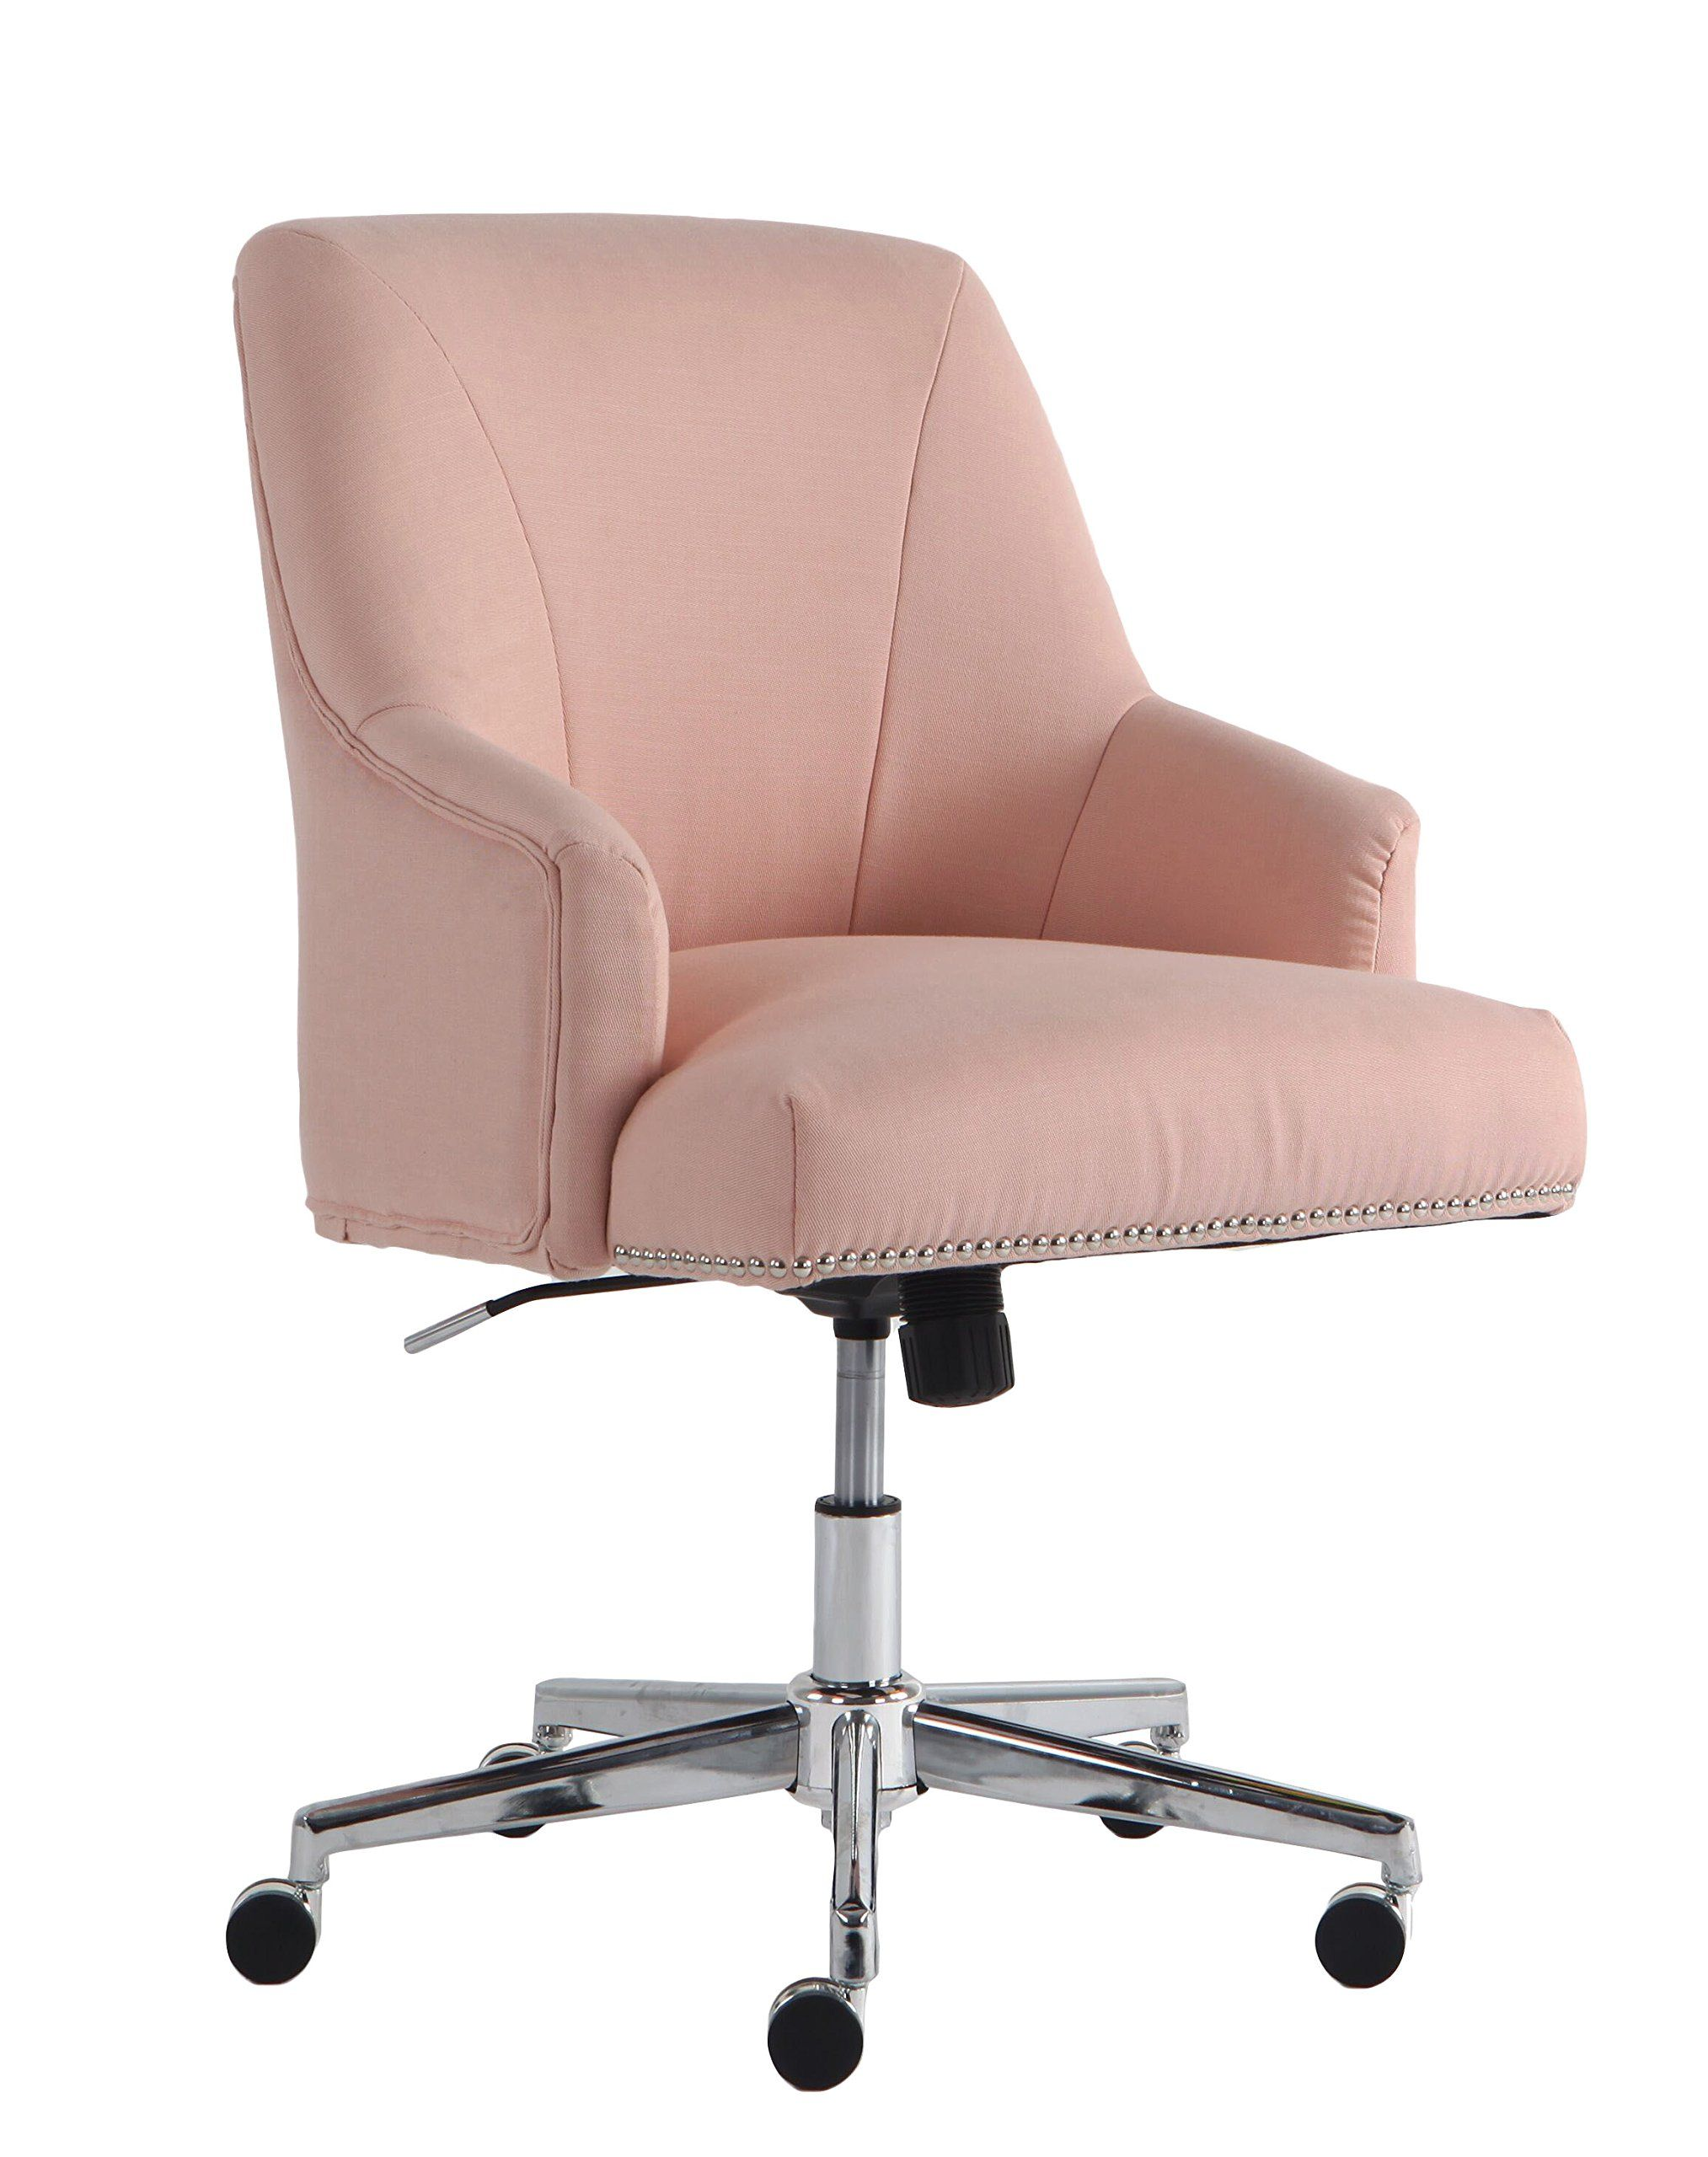 Serta Style Leighton Home Office Chair Twill Fabric Blush Pink Learn More By Visiting The Image Li Home Office Chairs Office Chair Design Pink Office Chair